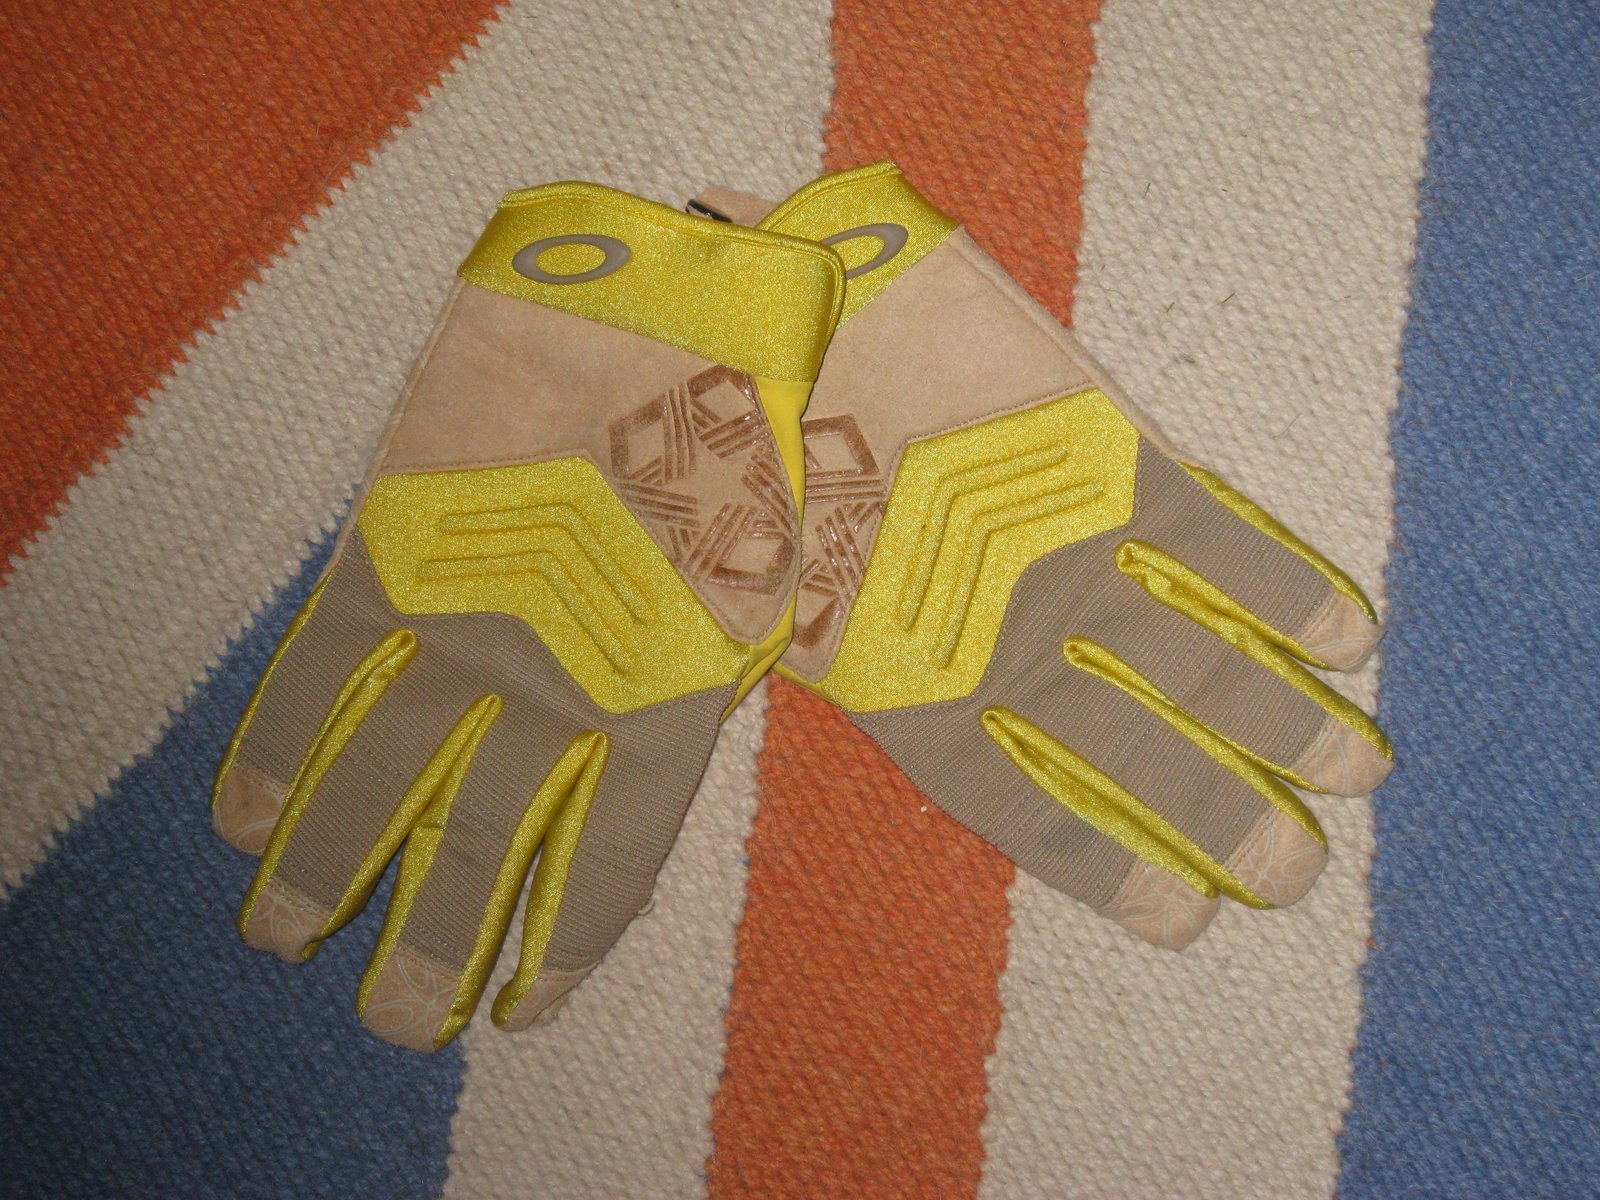 Oakley pipe gloves